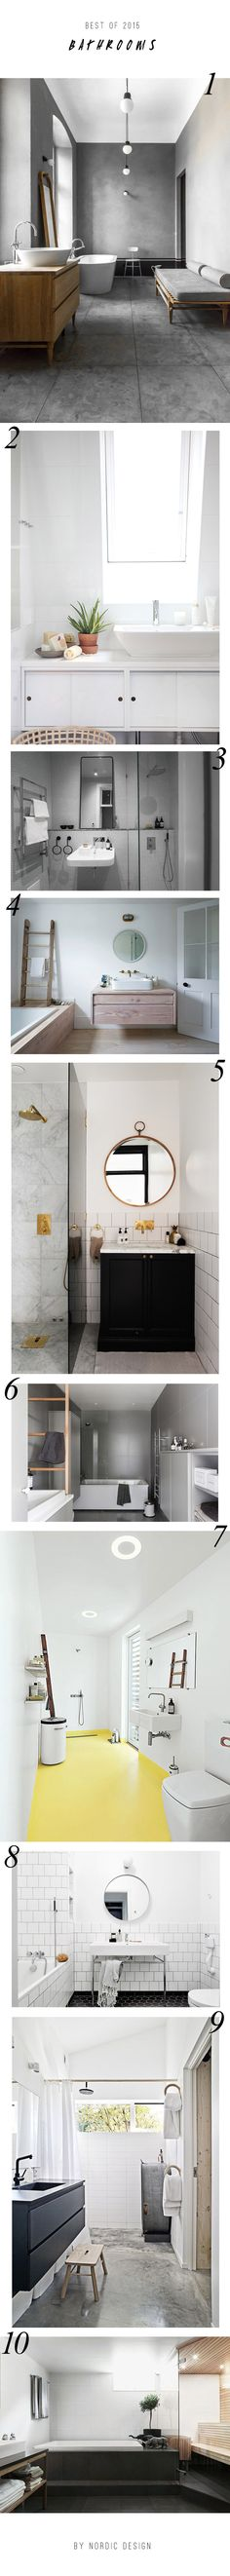 10 beautiful Scandinavian bathrooms